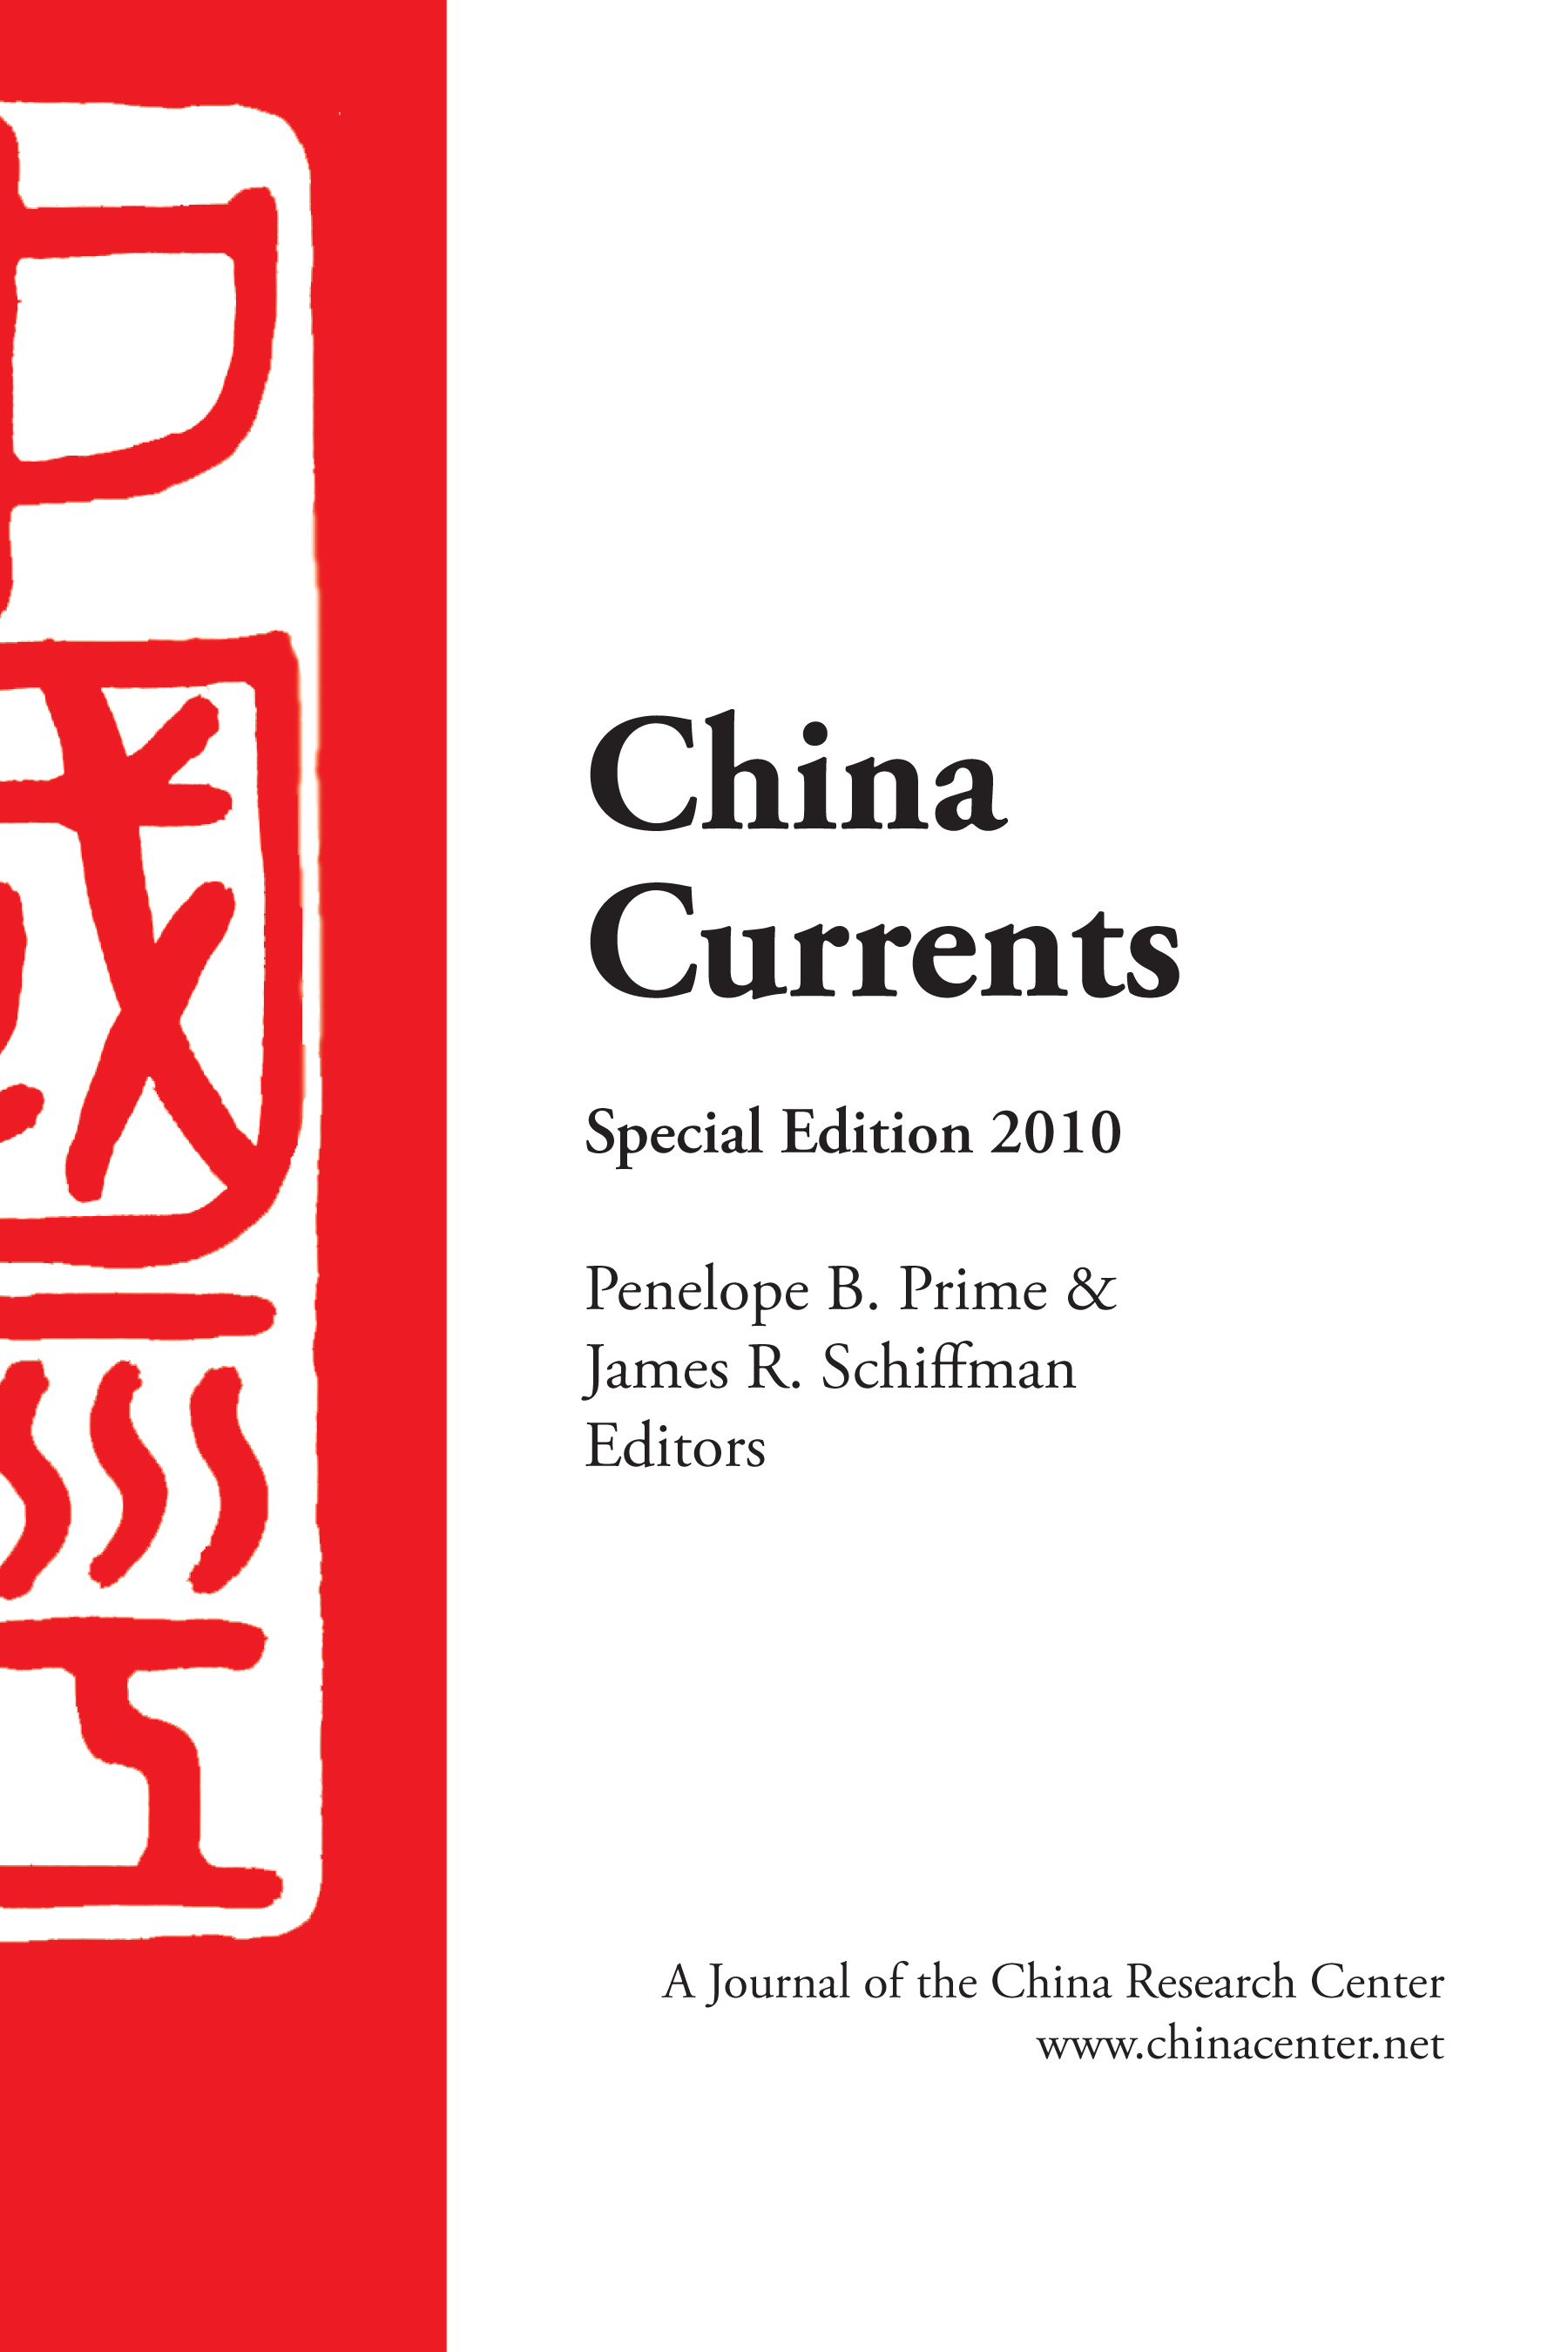 China Currents 2010